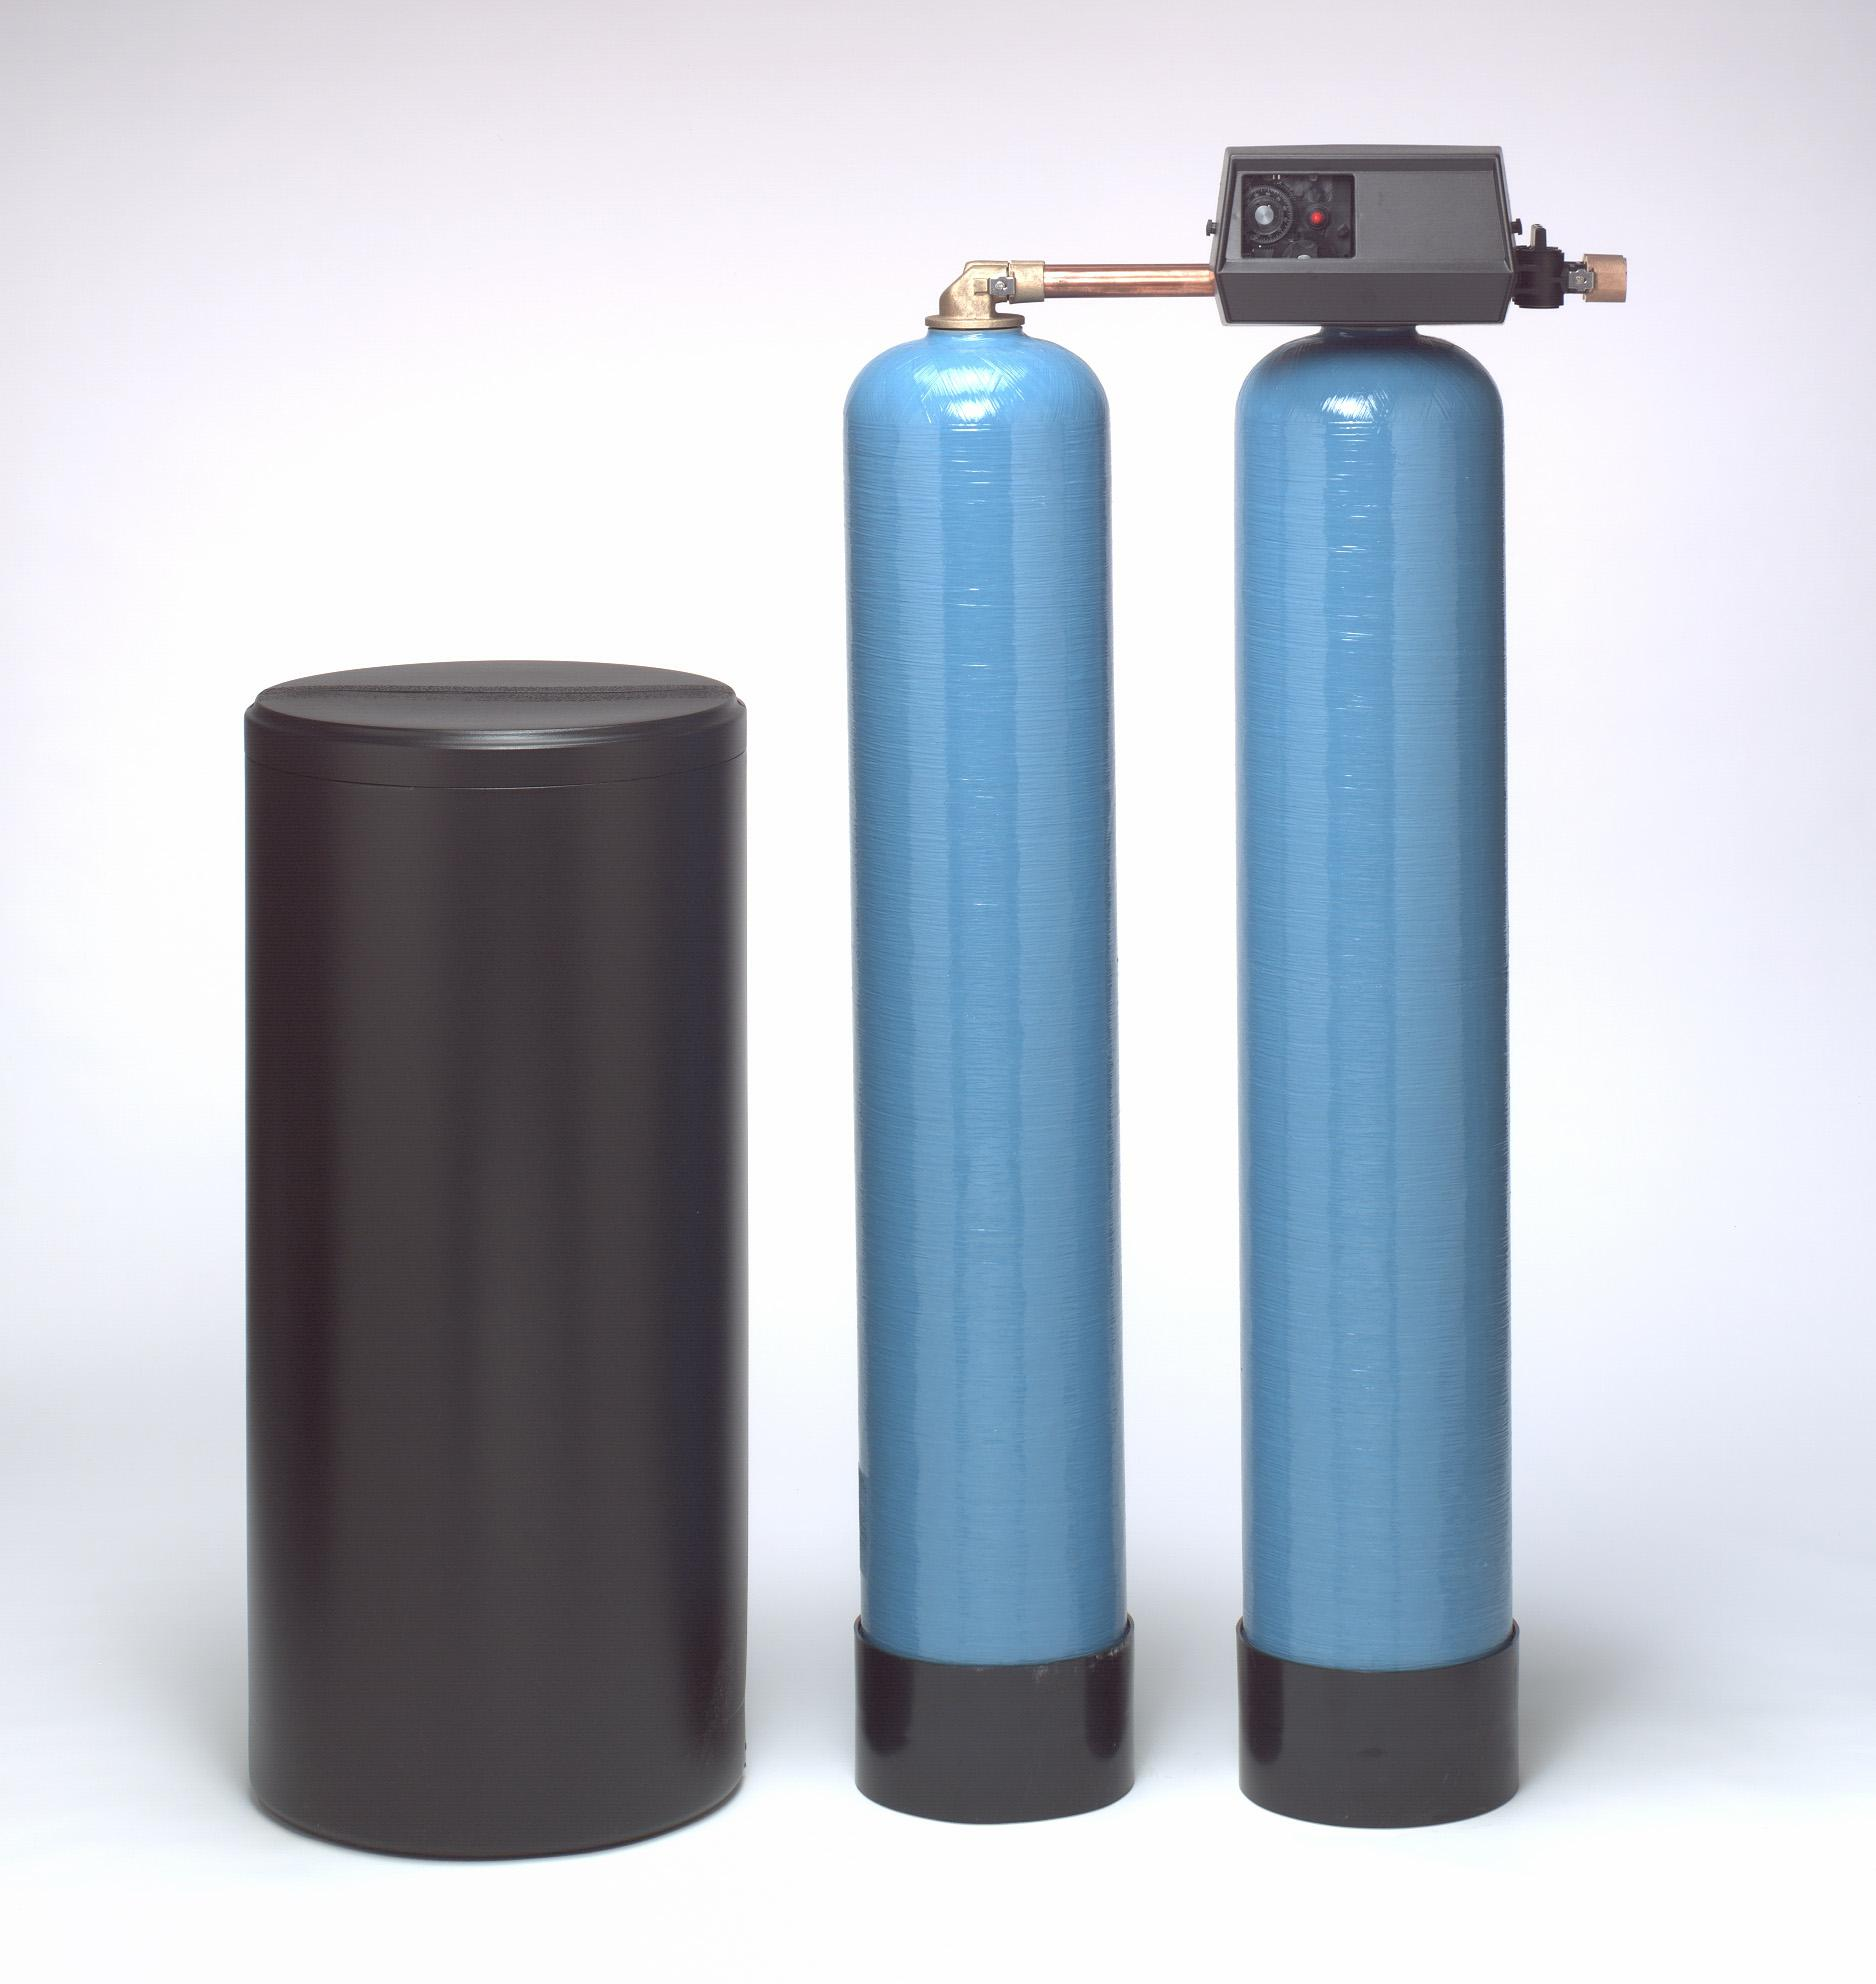 Viseon Iron Filter Water System for whole house water iron filtration.